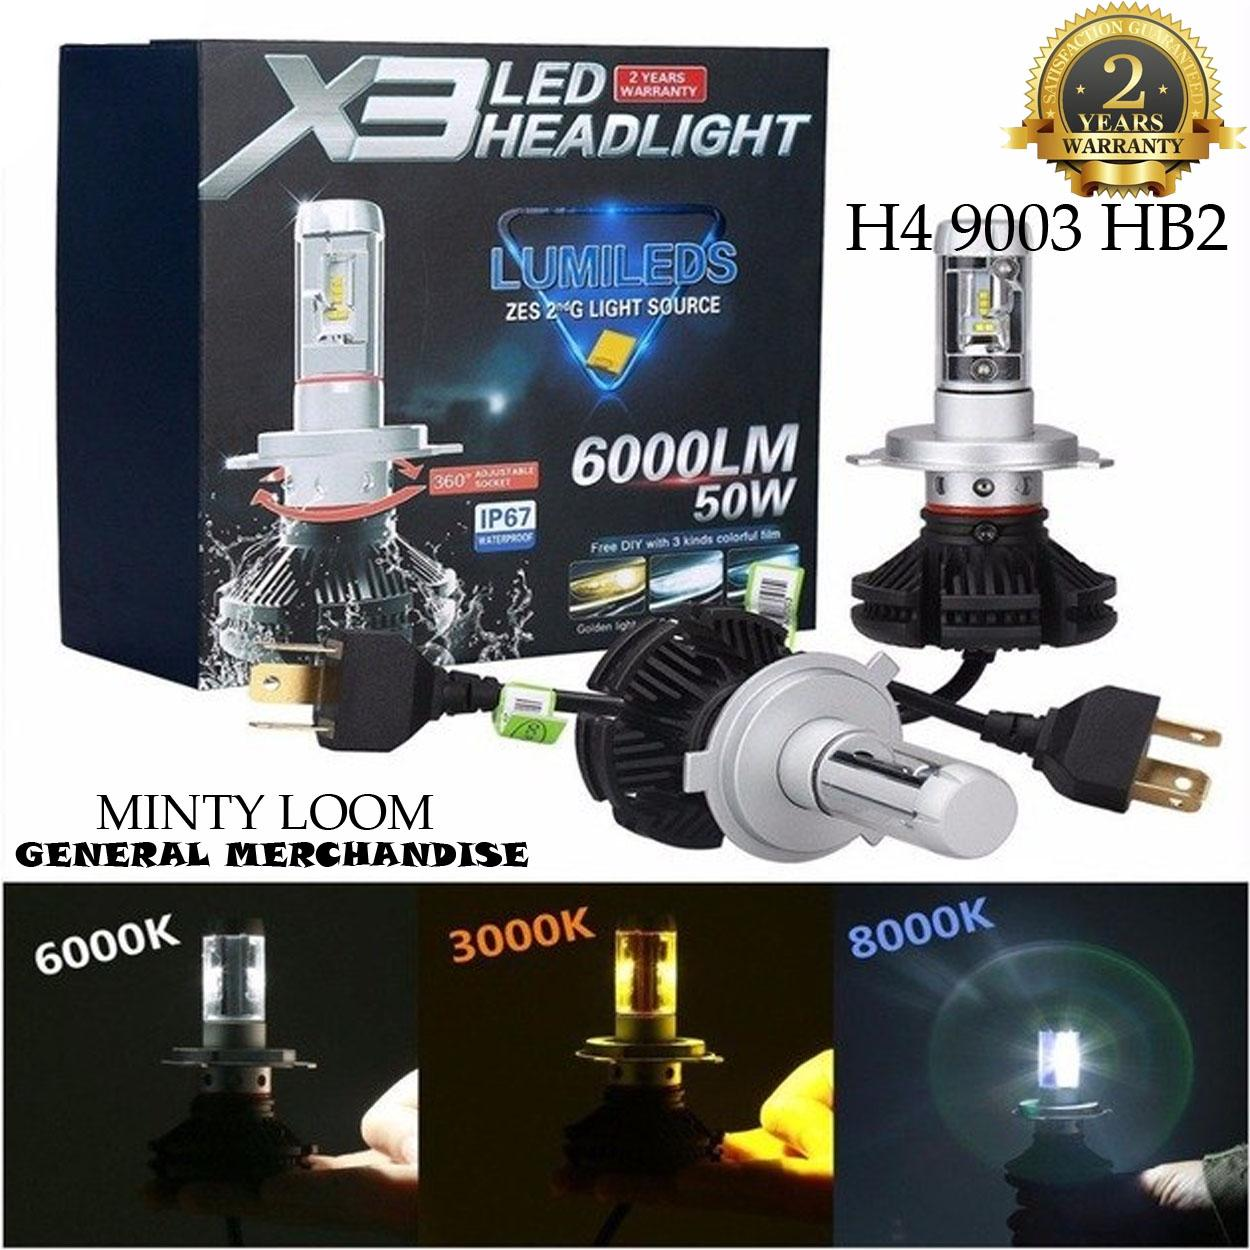 Tail Light Assembly For Sale Lens Online Brands Prices Oem H4 Headlight Relay Wiring Harness System 4 Headl Bulb 2pcs 1 Pair Car Led 8000 Lumen X3 9003 Hb2 High